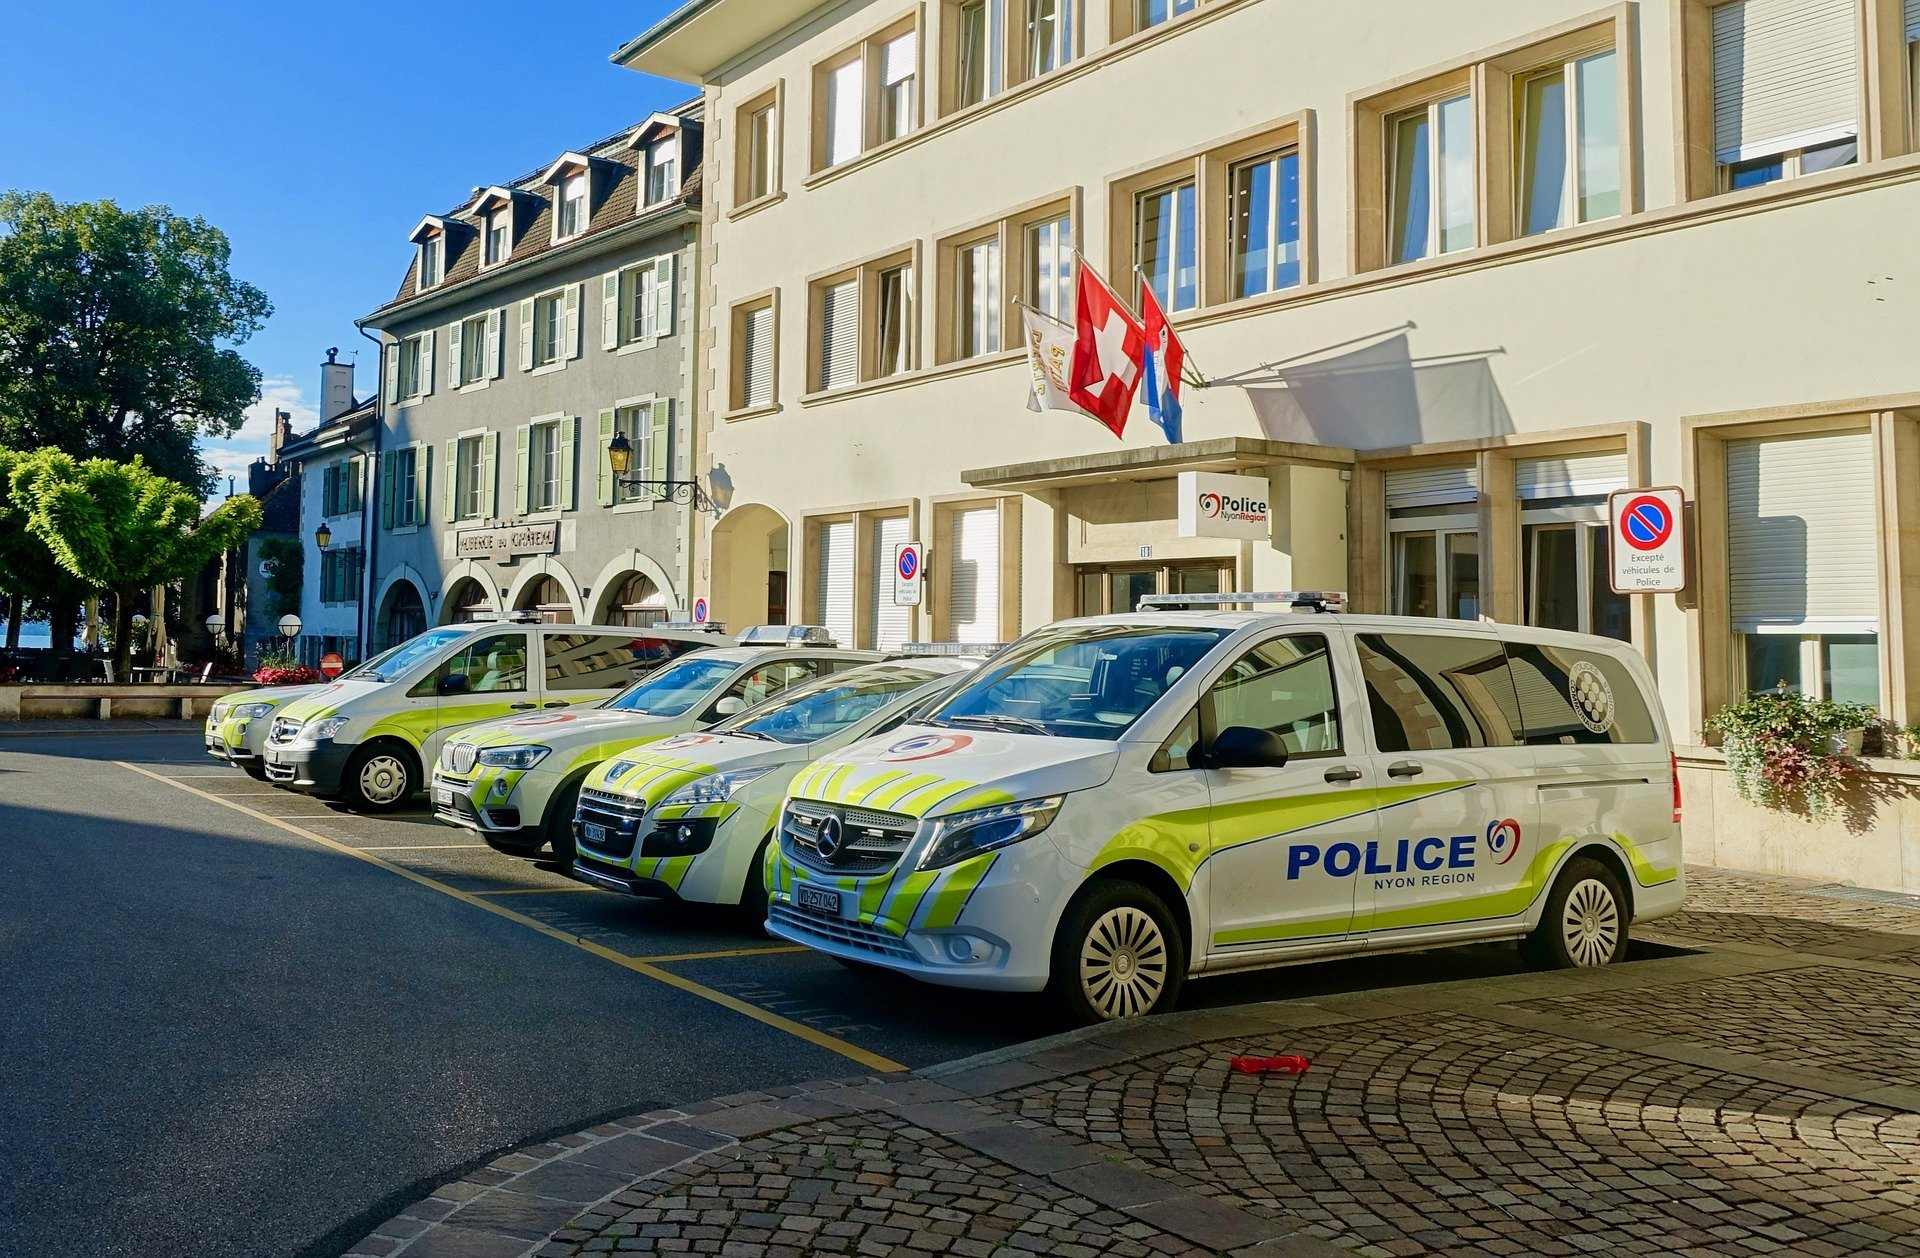 Pictured - A photo of police vehicles parked outside the police station   Source: Pixabay